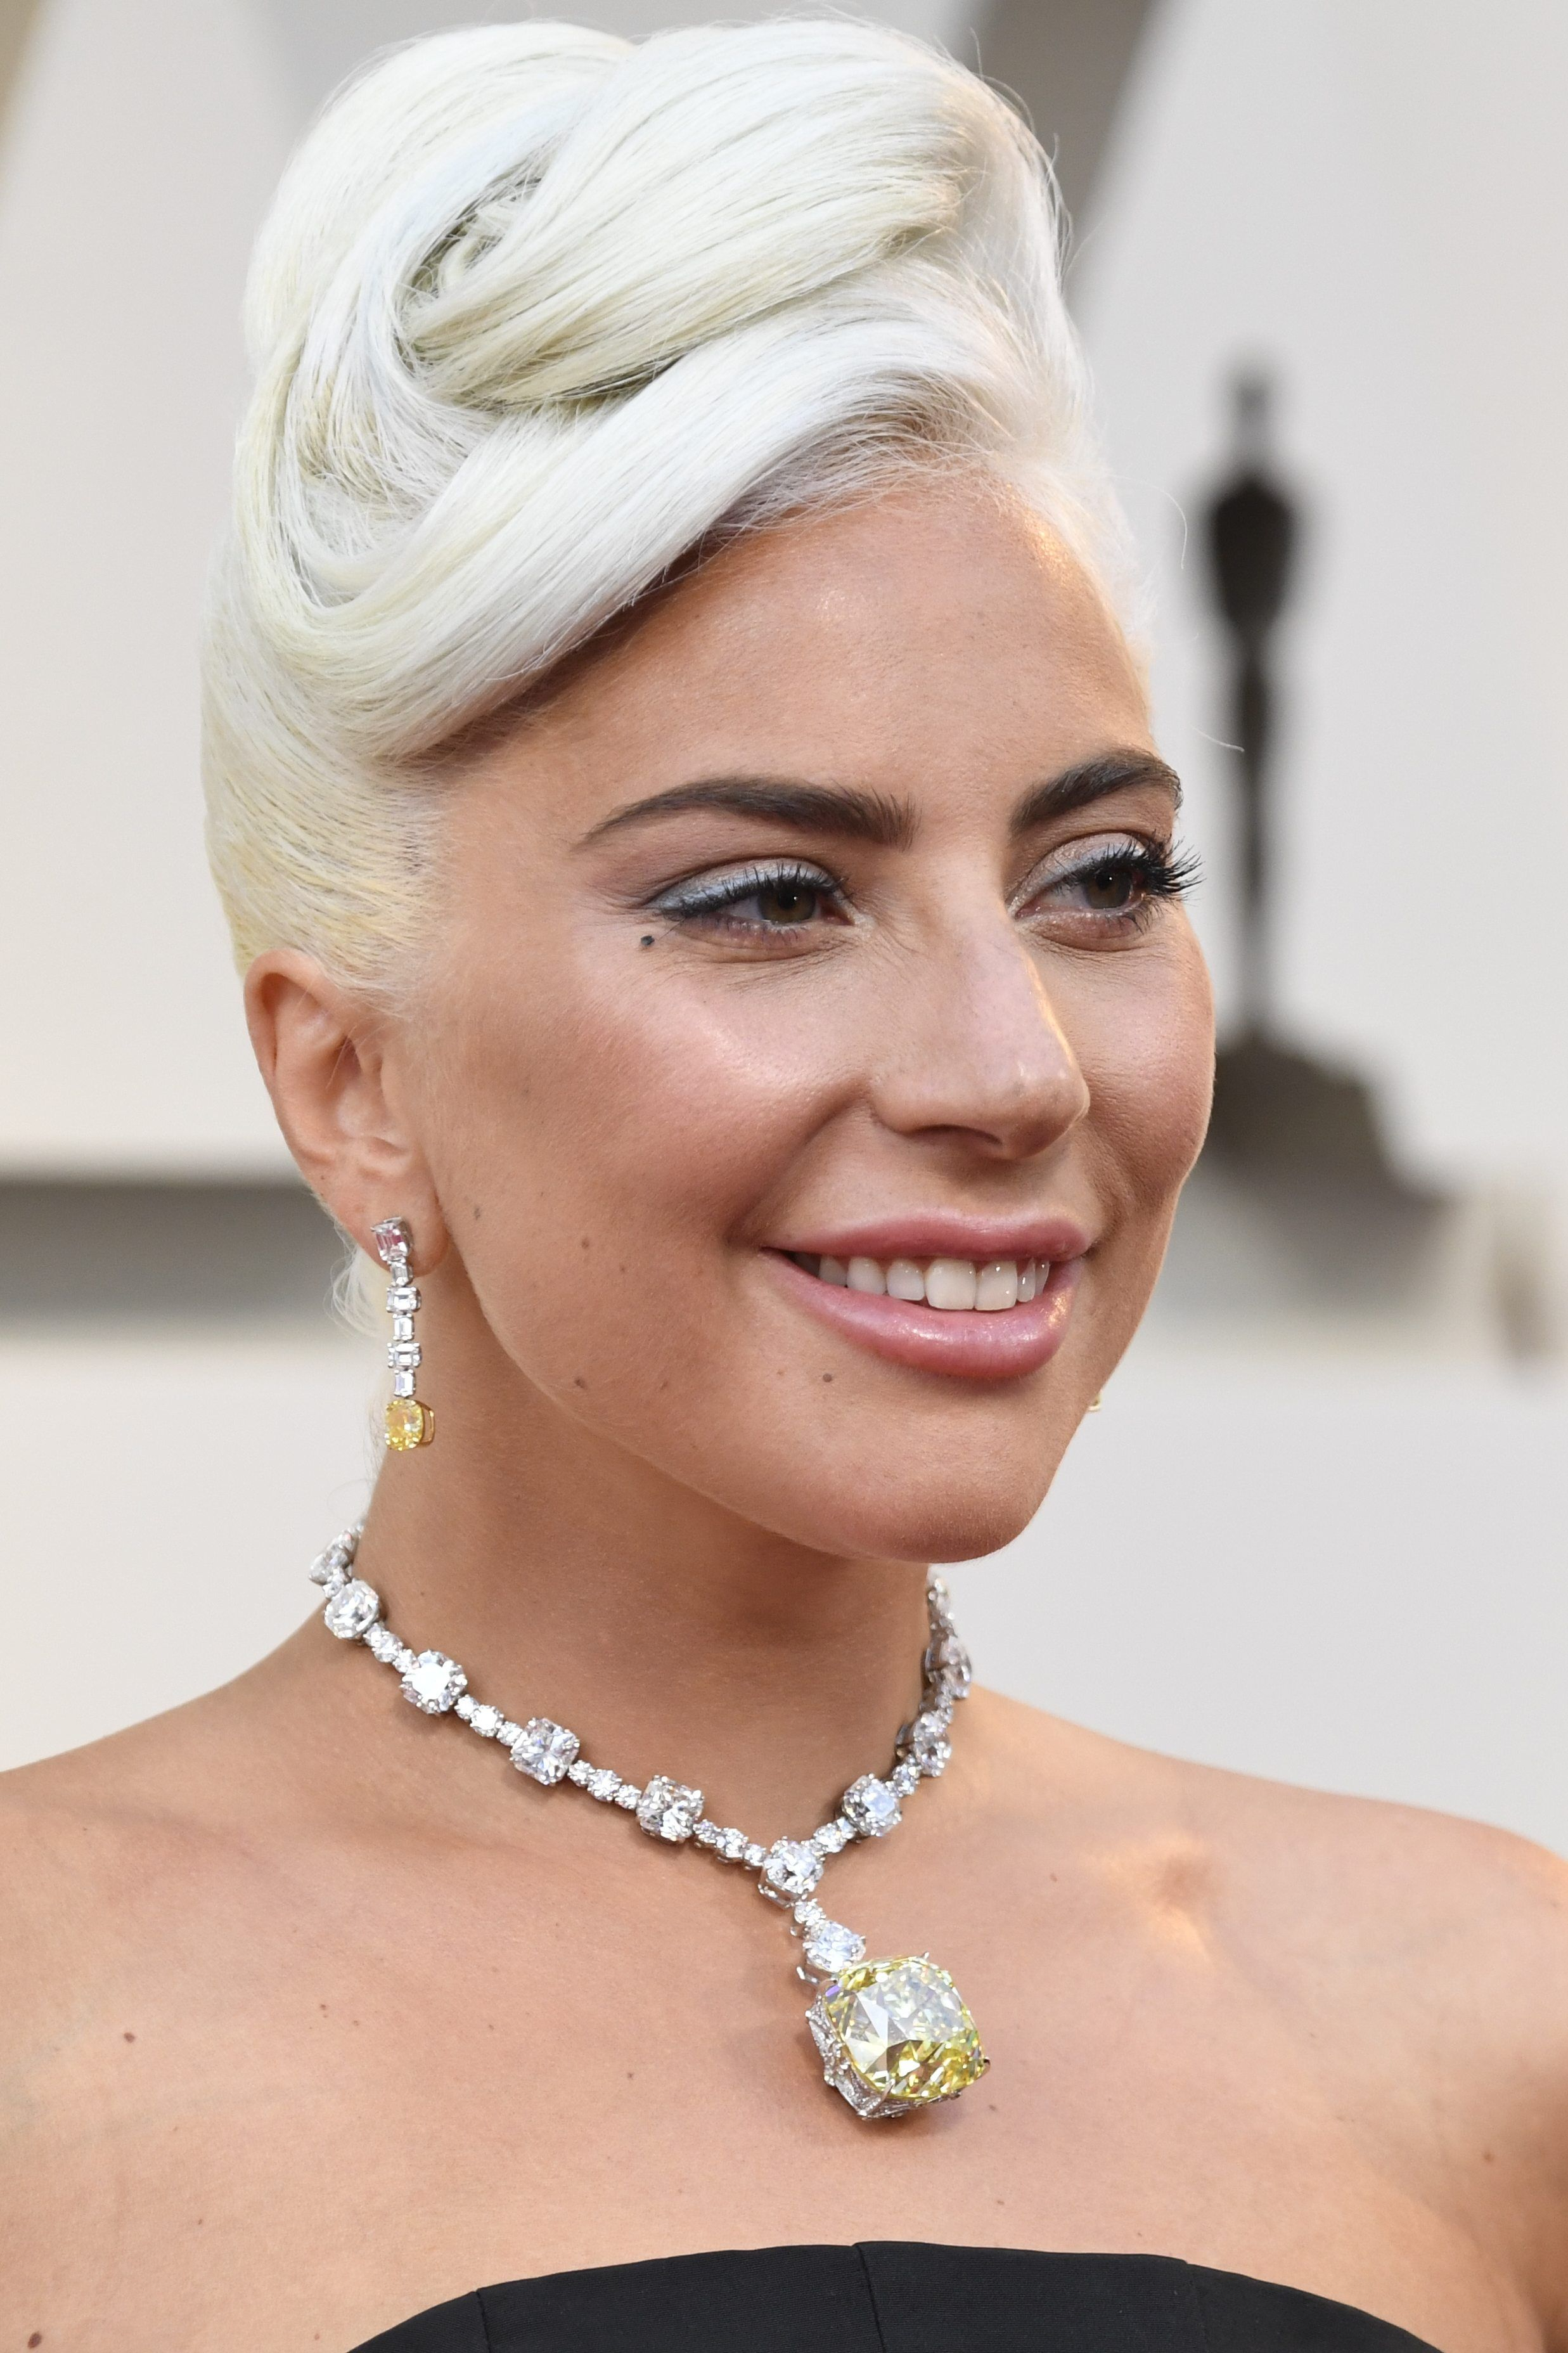 Yes Lady Gaga S Oscars Necklace Is Actually From Breakfast At Tiffany S Lady Gaga Celebrity Jewelry Tiffany Necklace